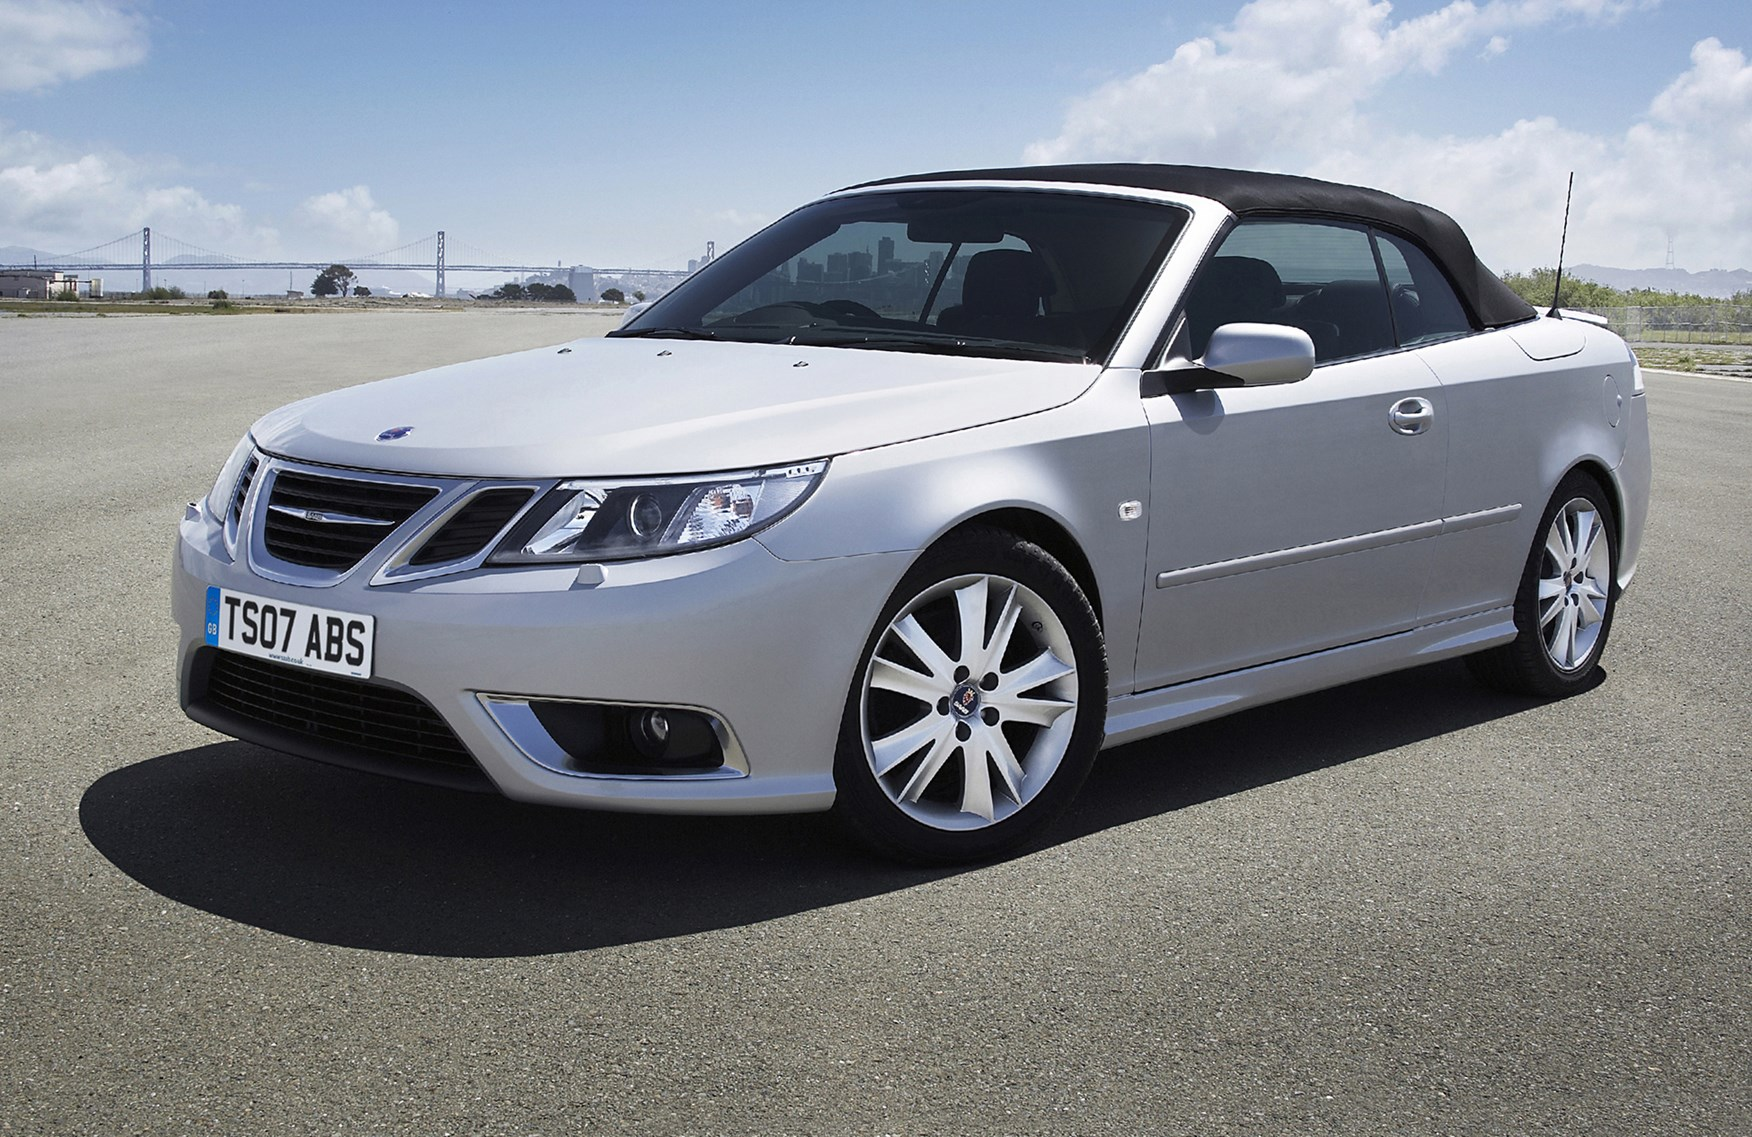 saab 9 3 convertible review 2003 2011 parkers. Black Bedroom Furniture Sets. Home Design Ideas